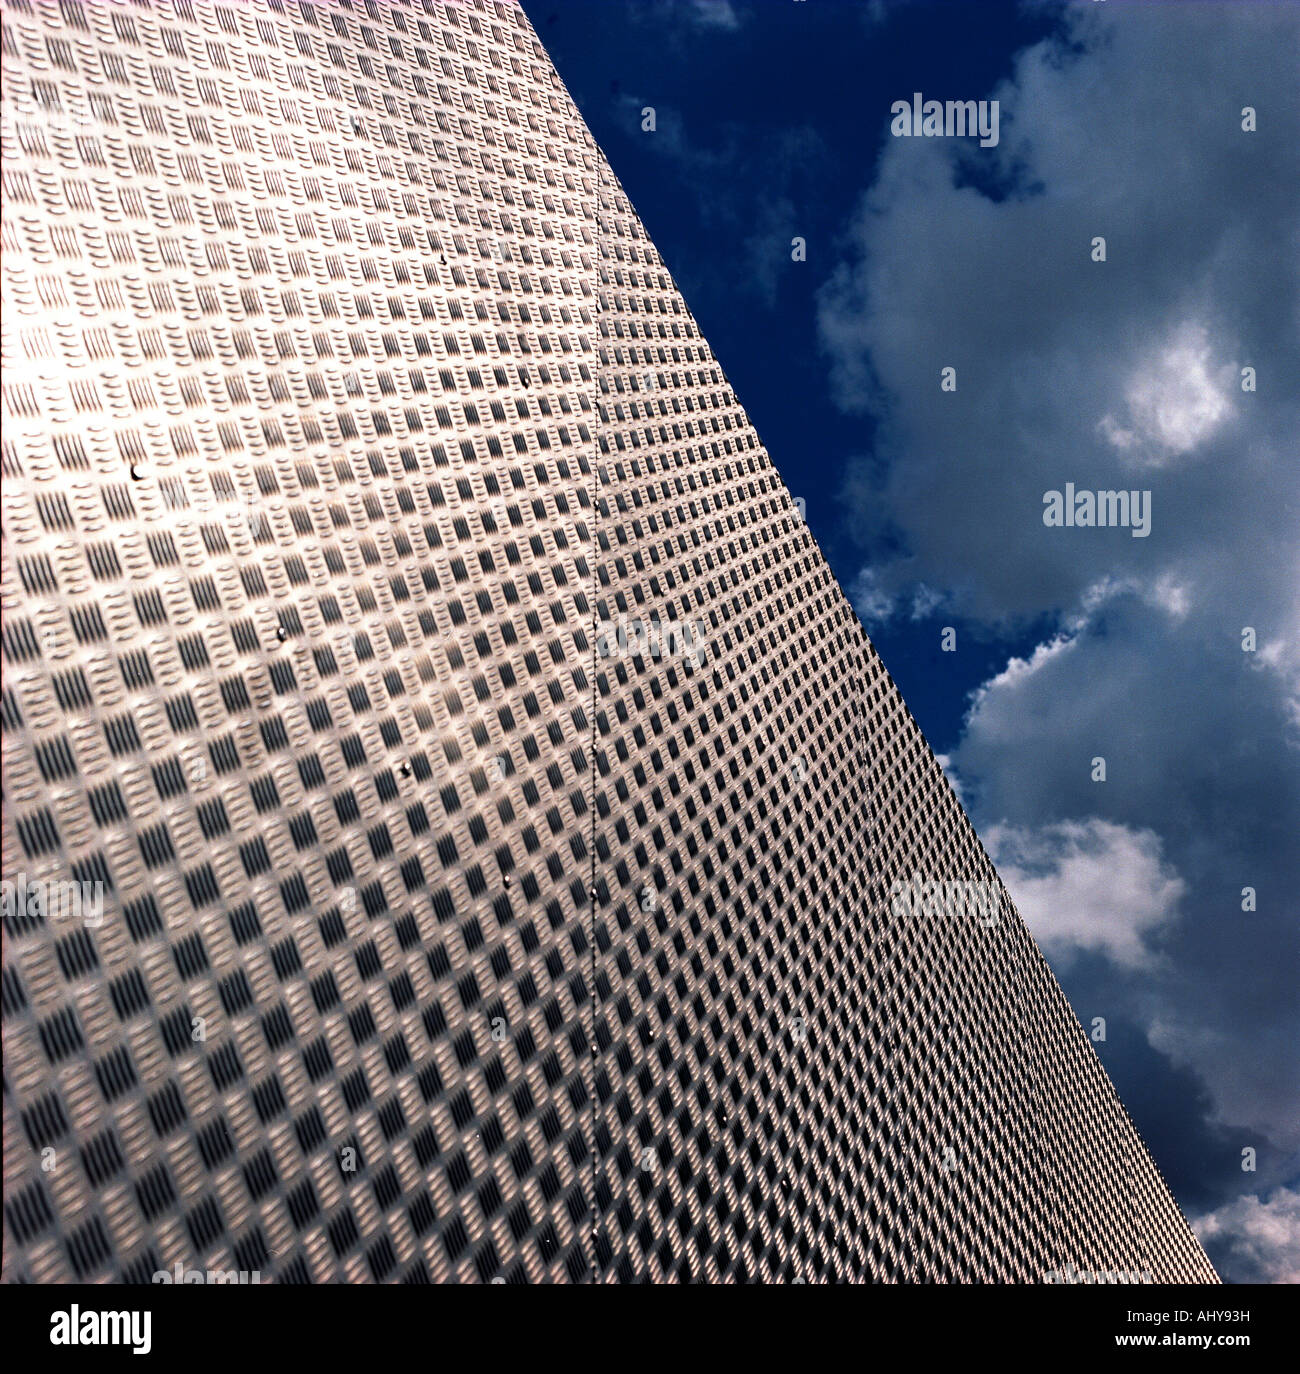 shiny metal surface against sky - Stock Image